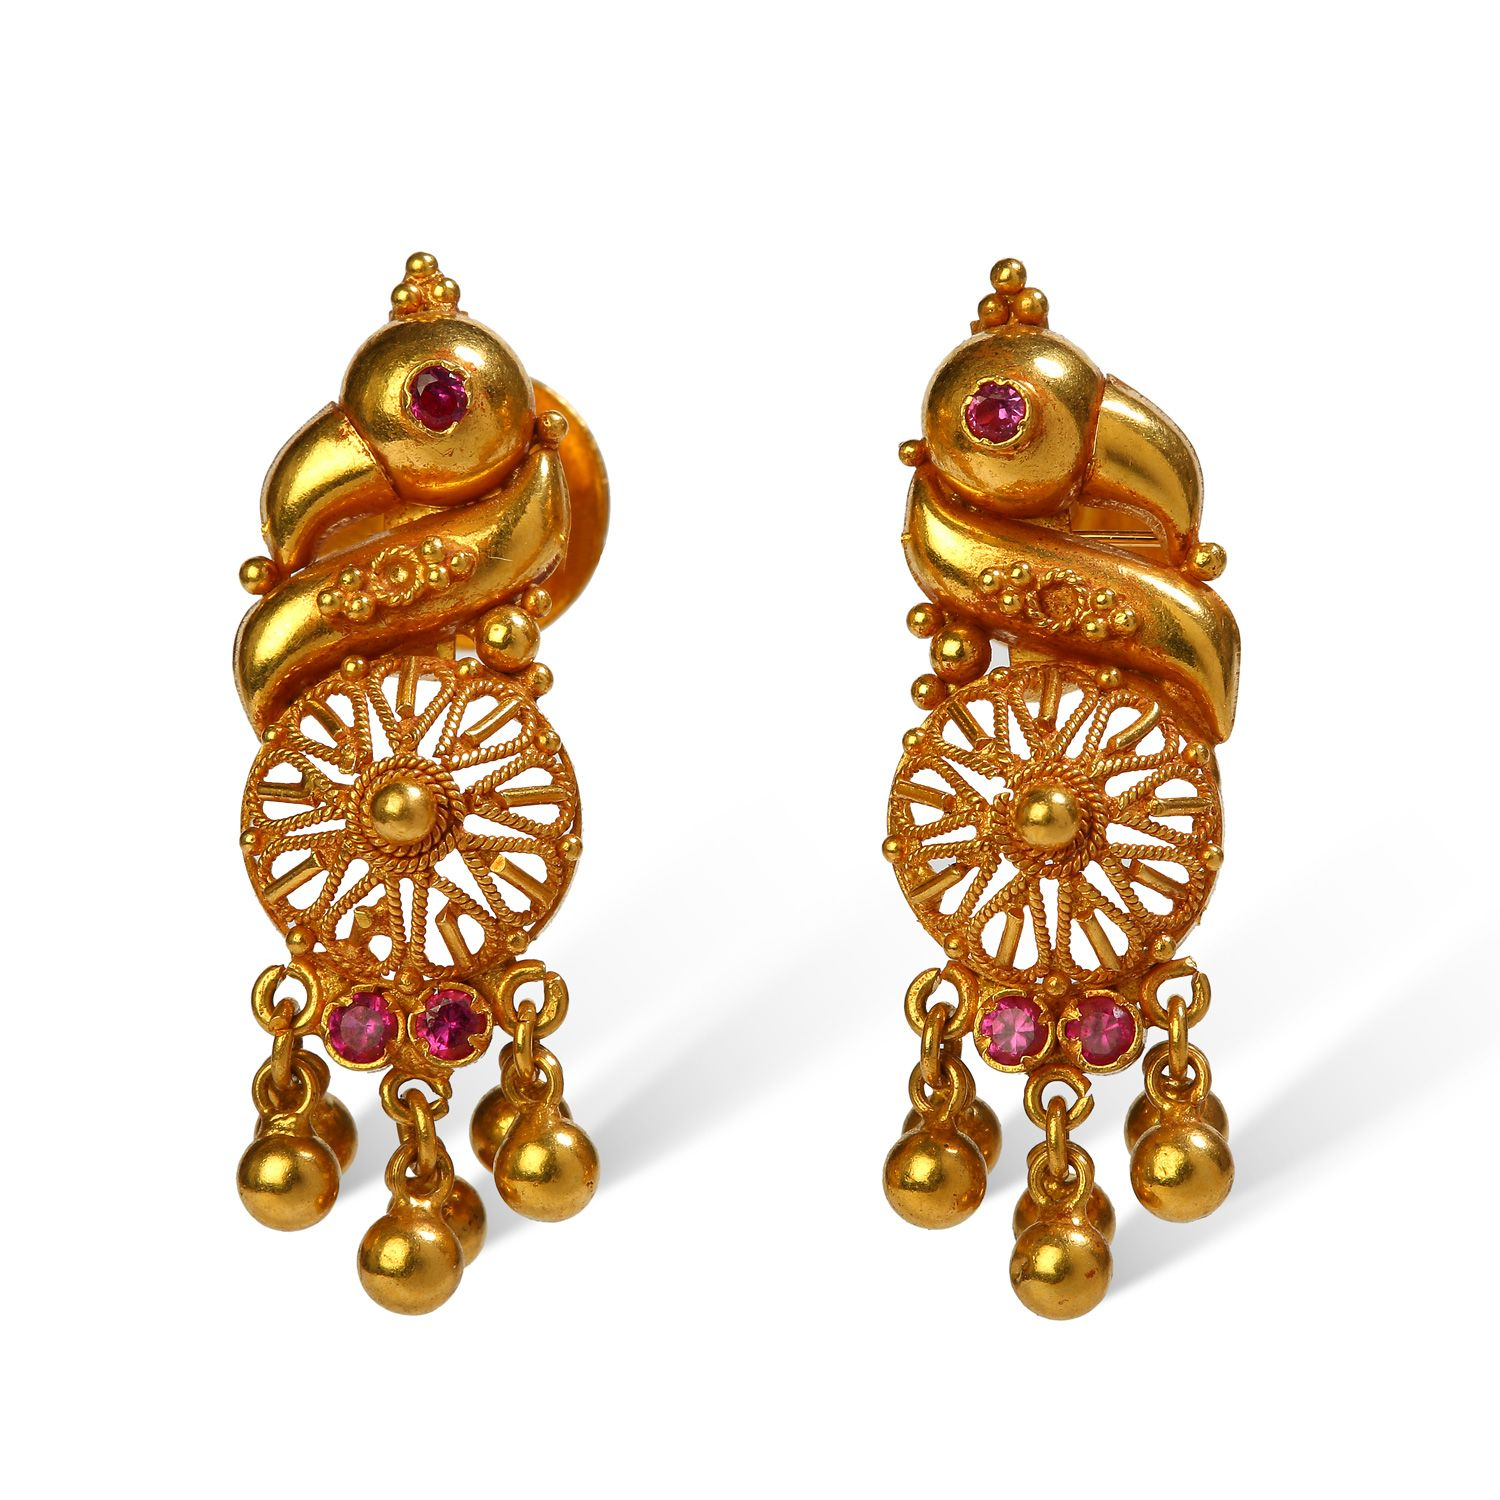 bhima jewellers collections - Google Search   Gold Earrings ...